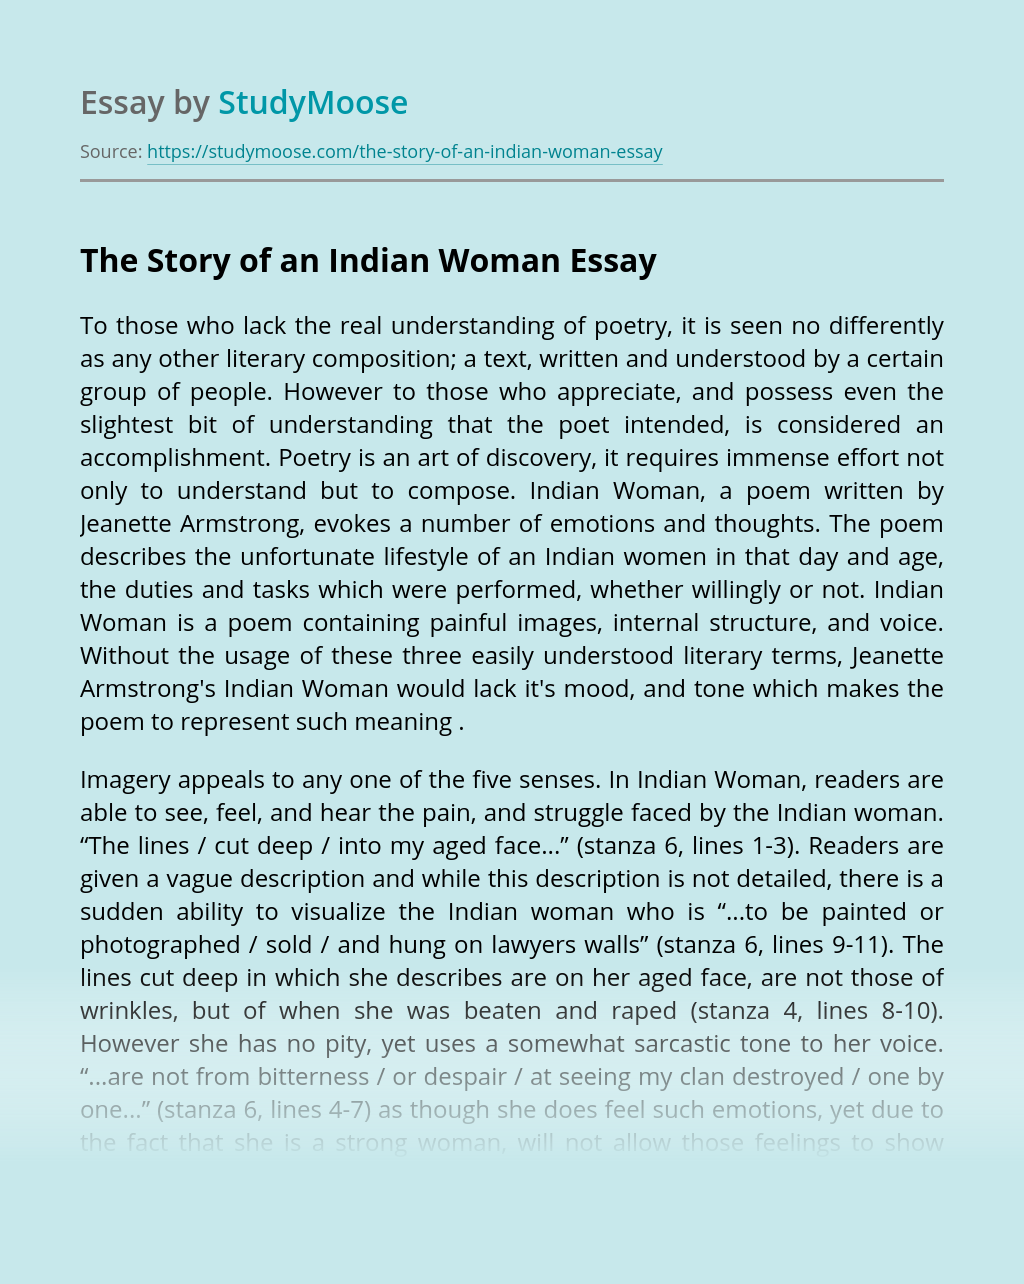 The Story of an Indian Woman